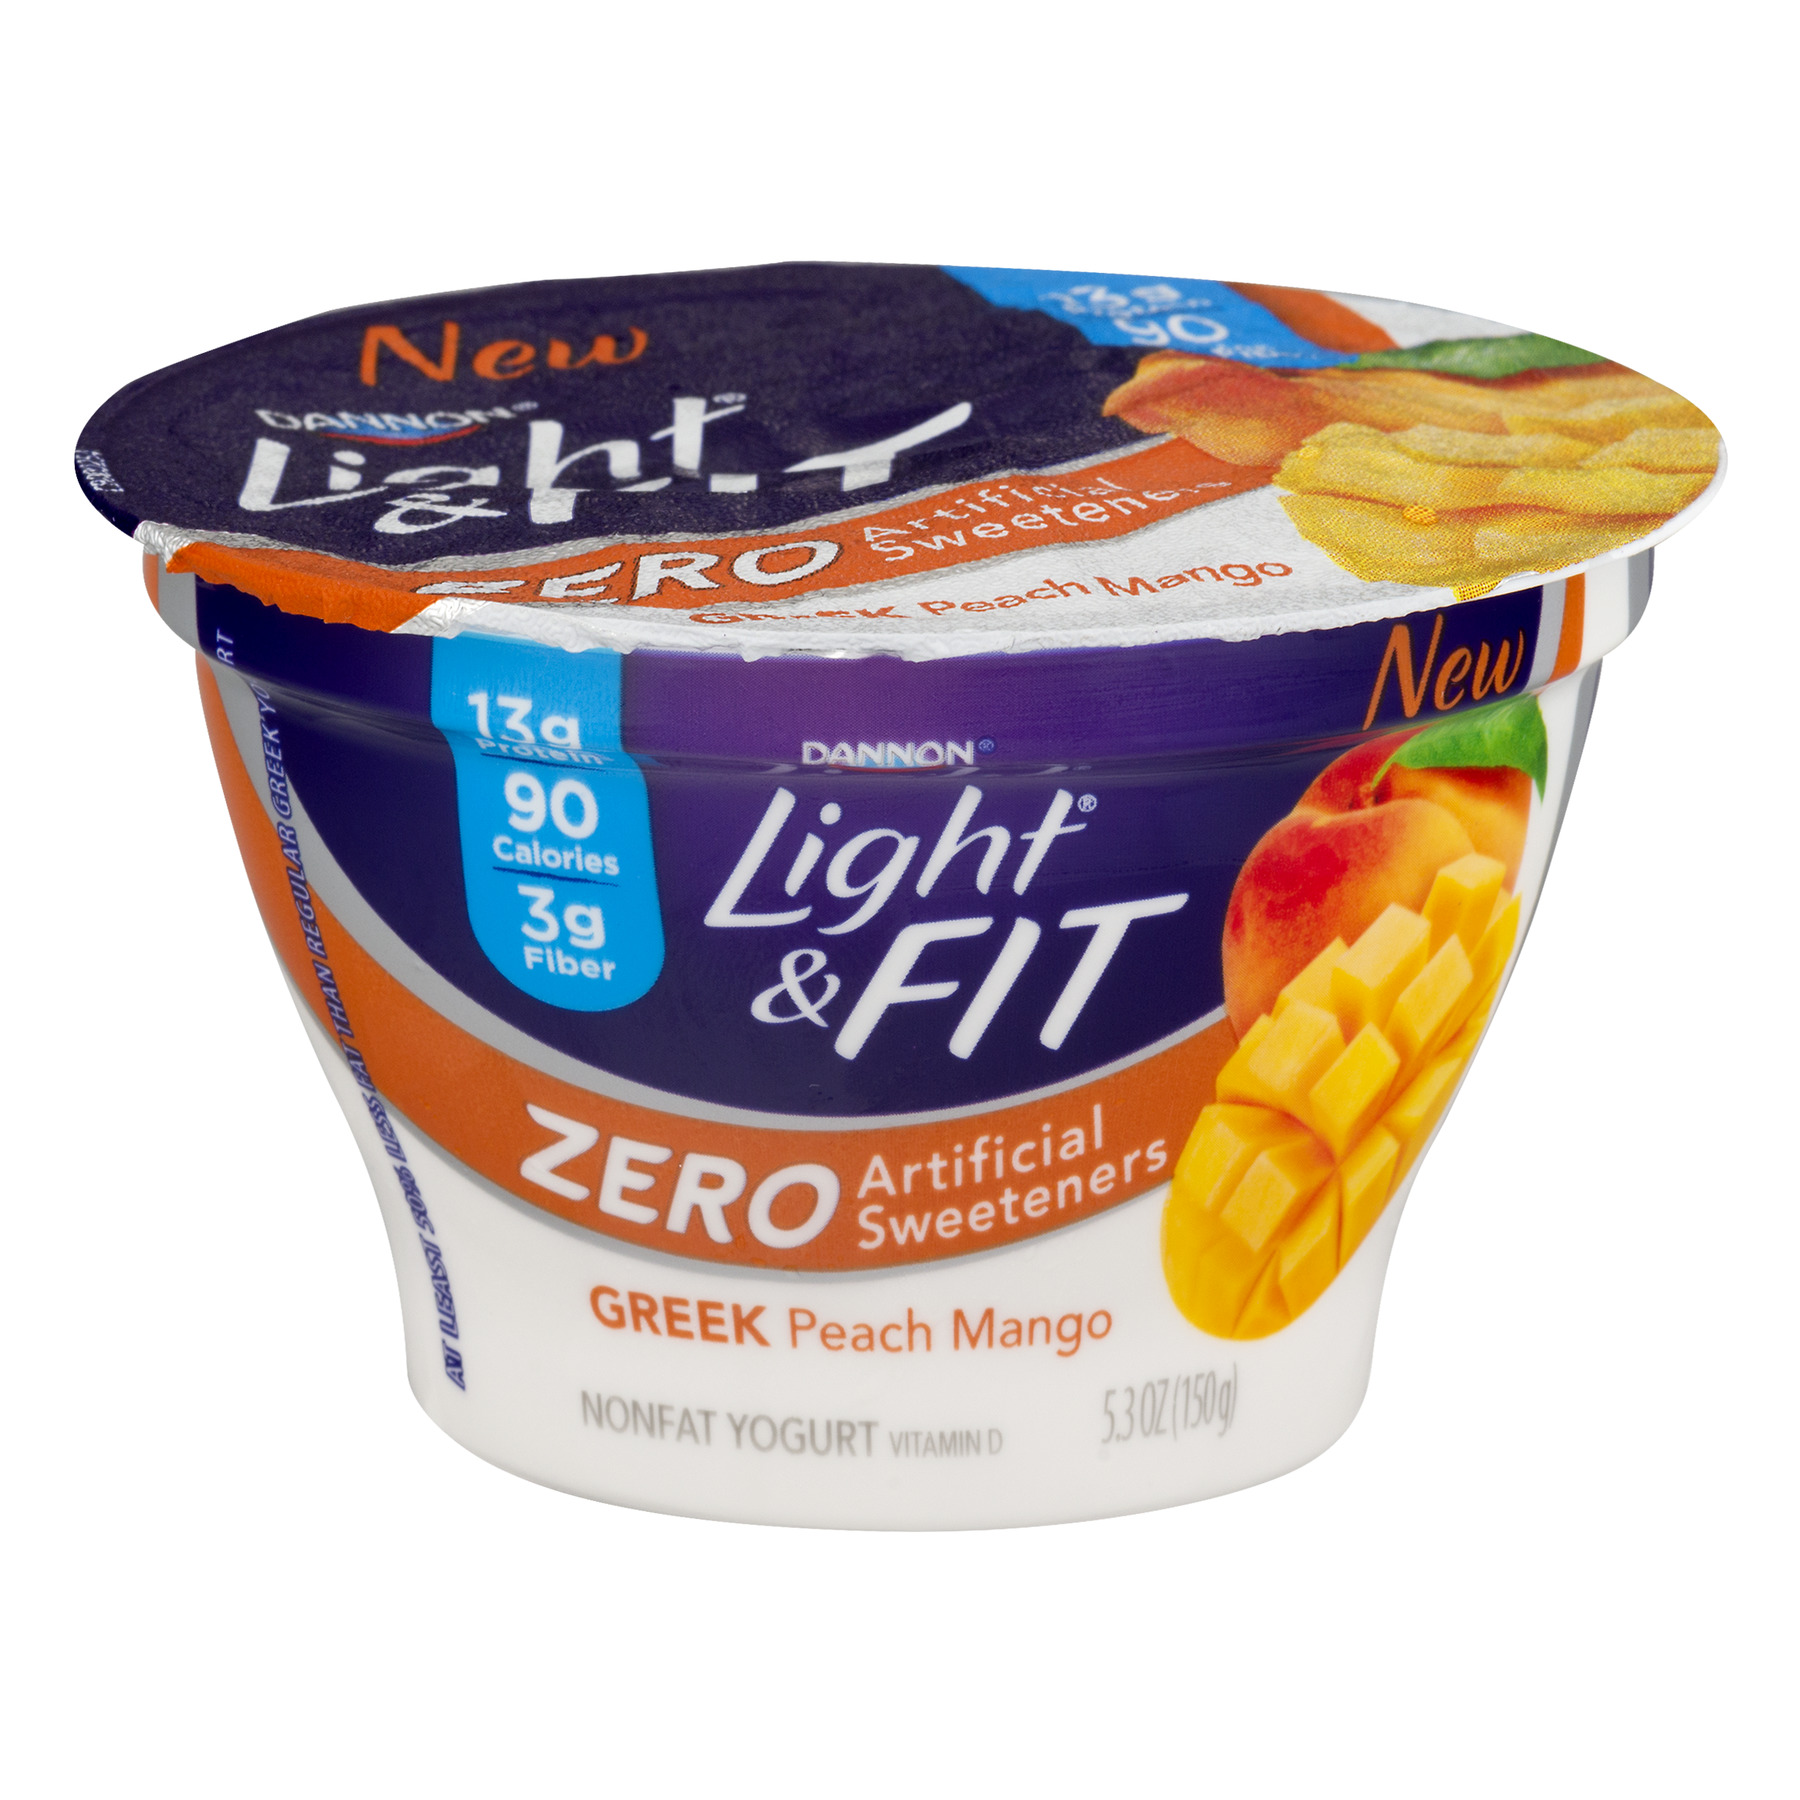 Dannon® Light & Fit® Greek Zero Artificial Sweeteners Nonfat Yogurt Peach Mango 5.3oz Single Serve